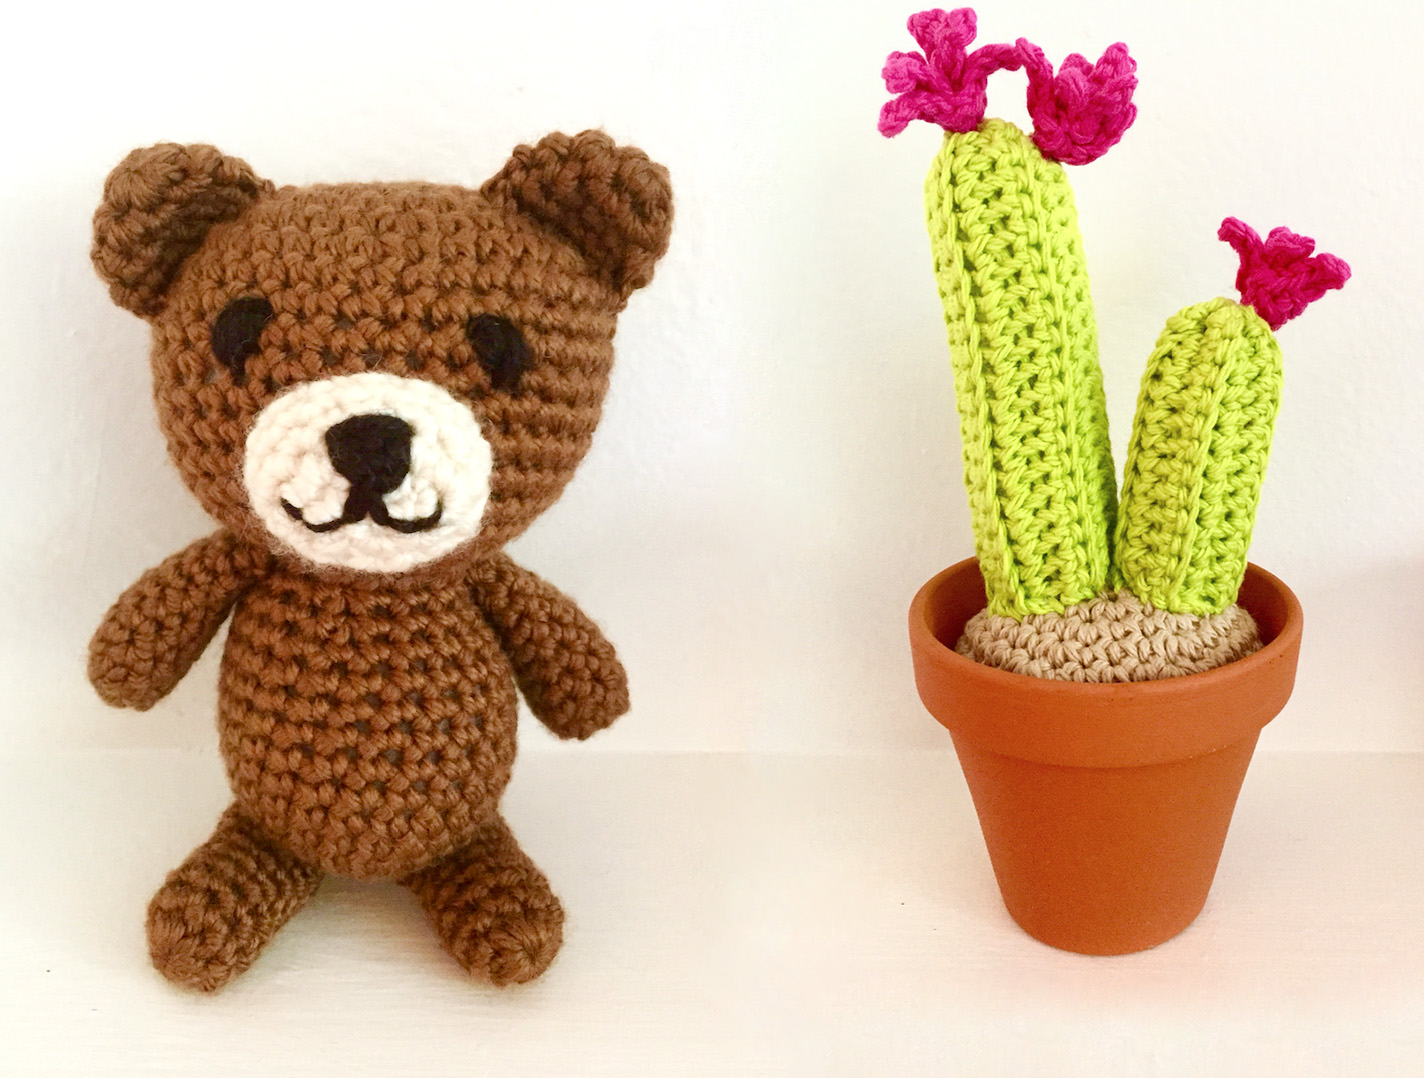 Amigurumi Teddy Bears : Cactus and teddy bear patterns for classes at michaels stores